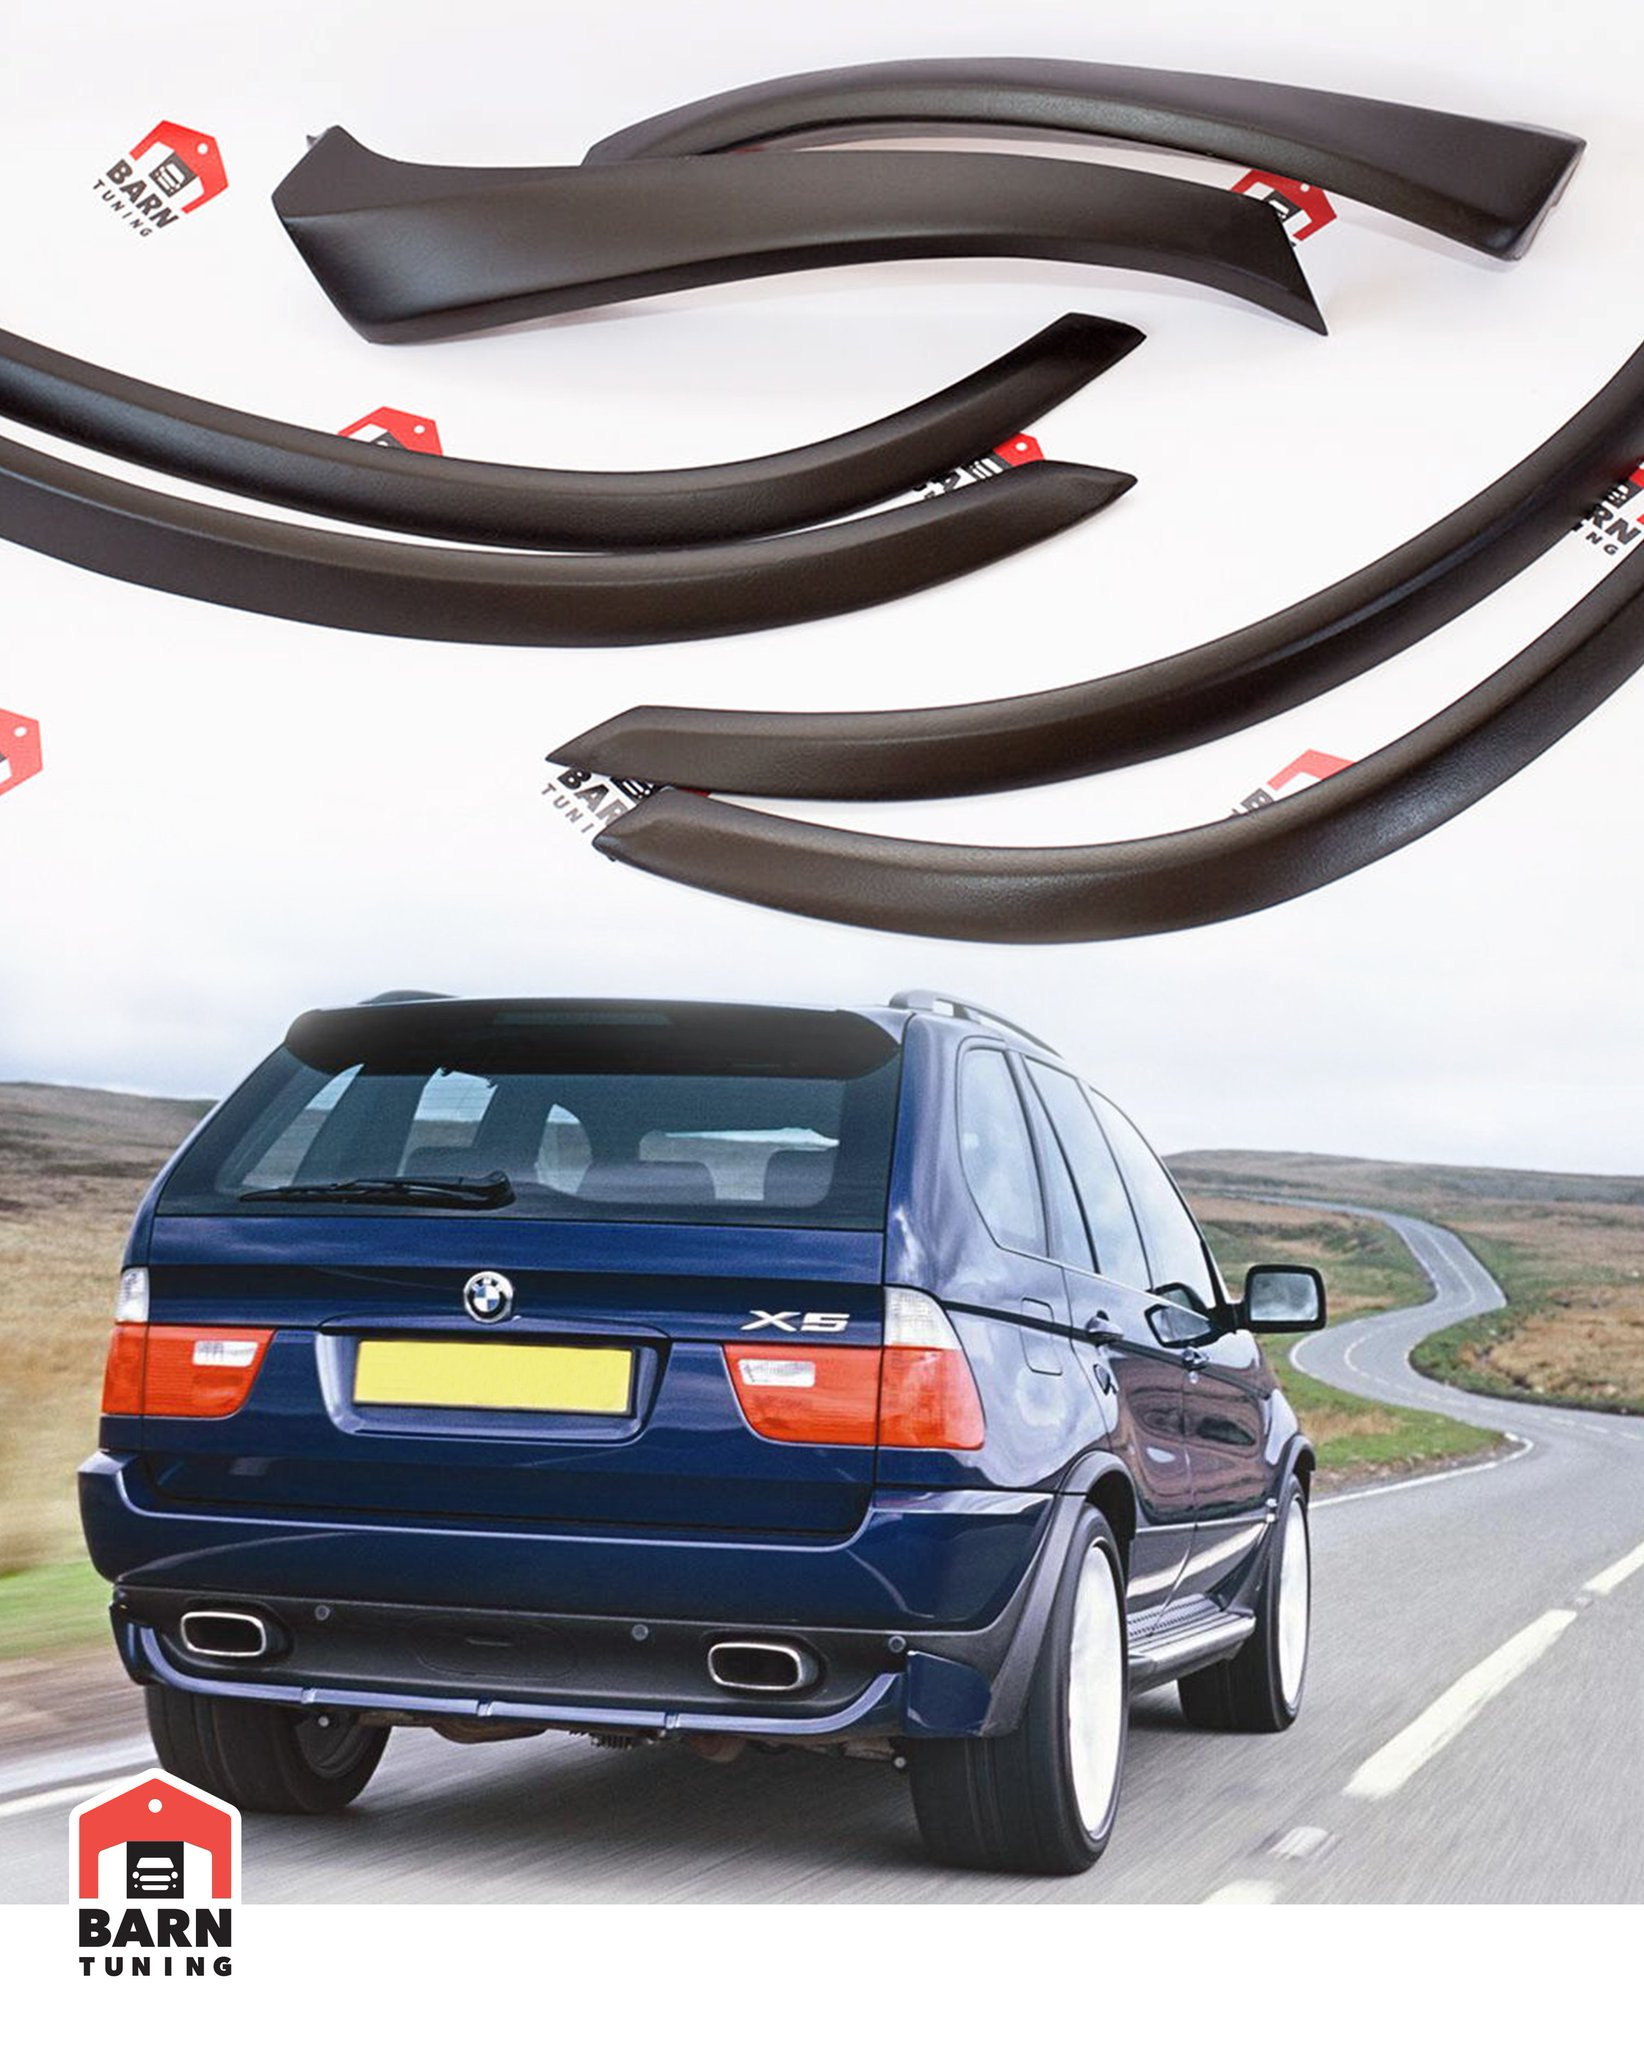 Barn Tuning On Twitter Bmw X5 E53 4 6is 4 8is Style Fender Flares For 112 Free Shipping Worldwide Https T Co 7kbse5fvnv Sale Ebay Tuning Wide X5 Fiberglass Bestprice Bmw